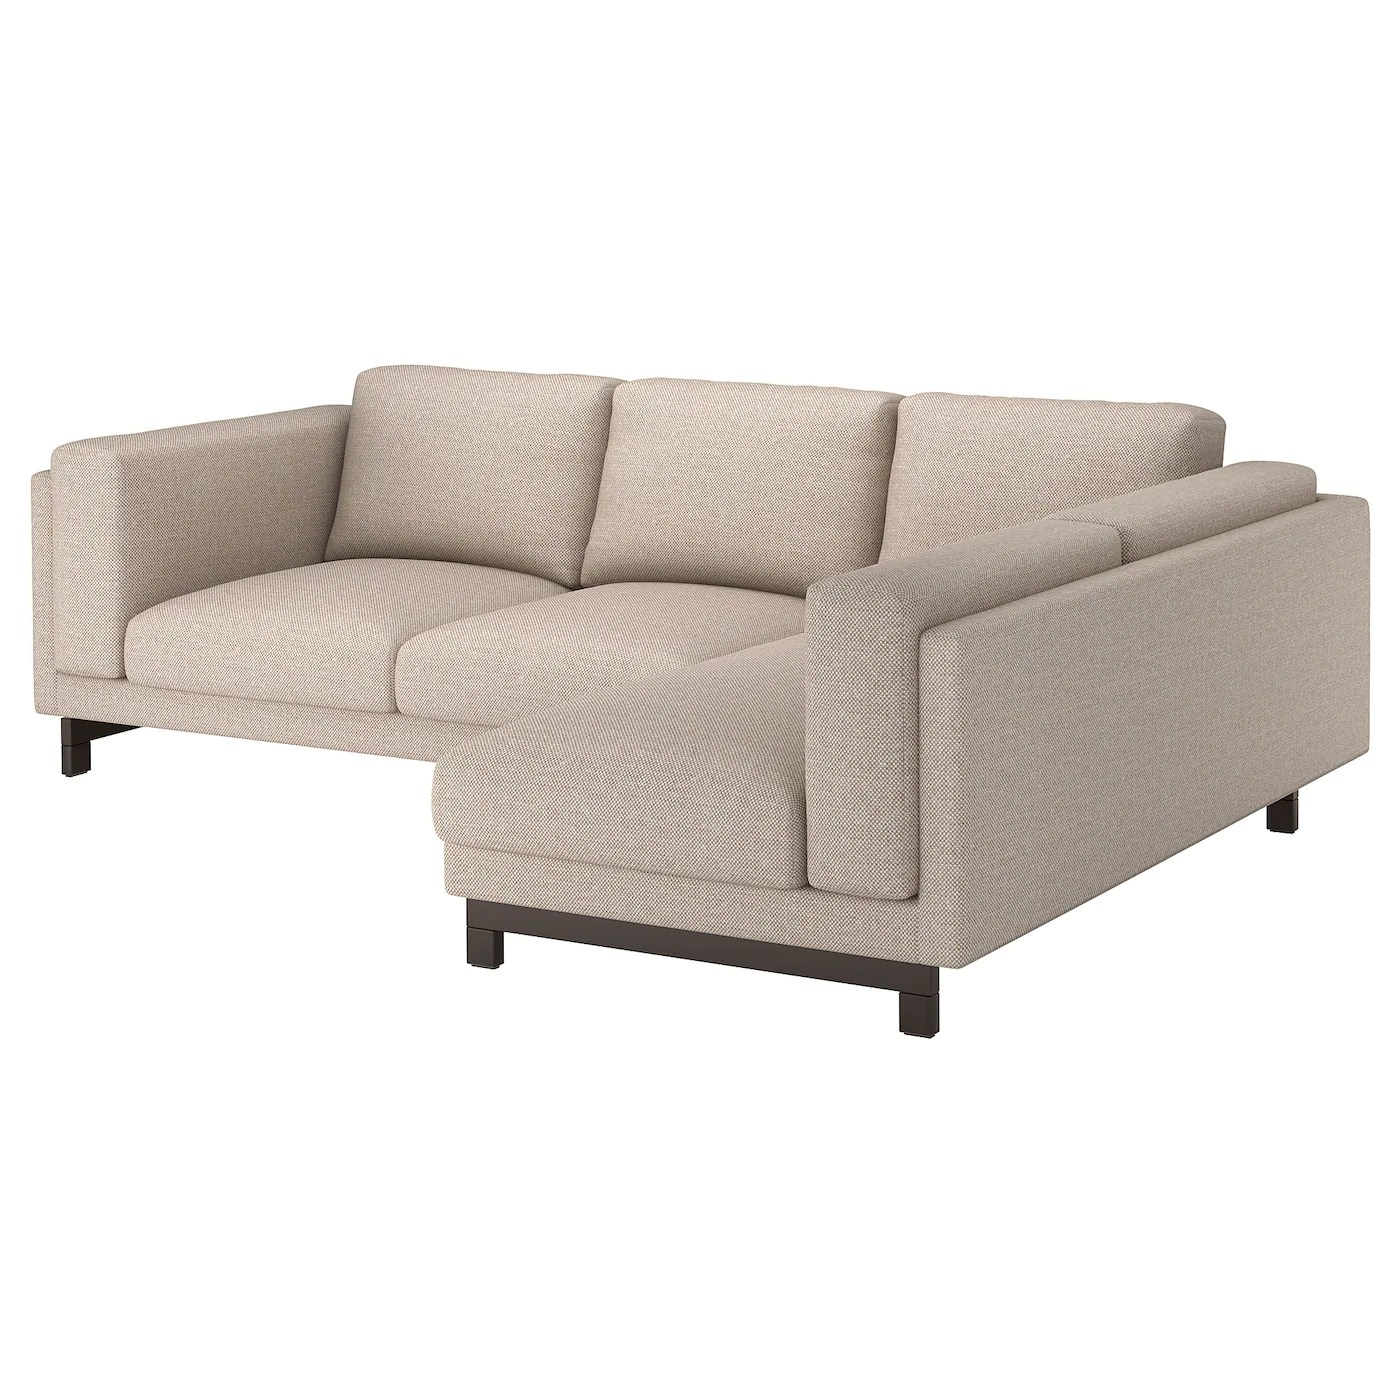 Ikea Bettwäsche Beige Nockeby 3 Seat Sofa With Chaise Longue Right Lejde Dark